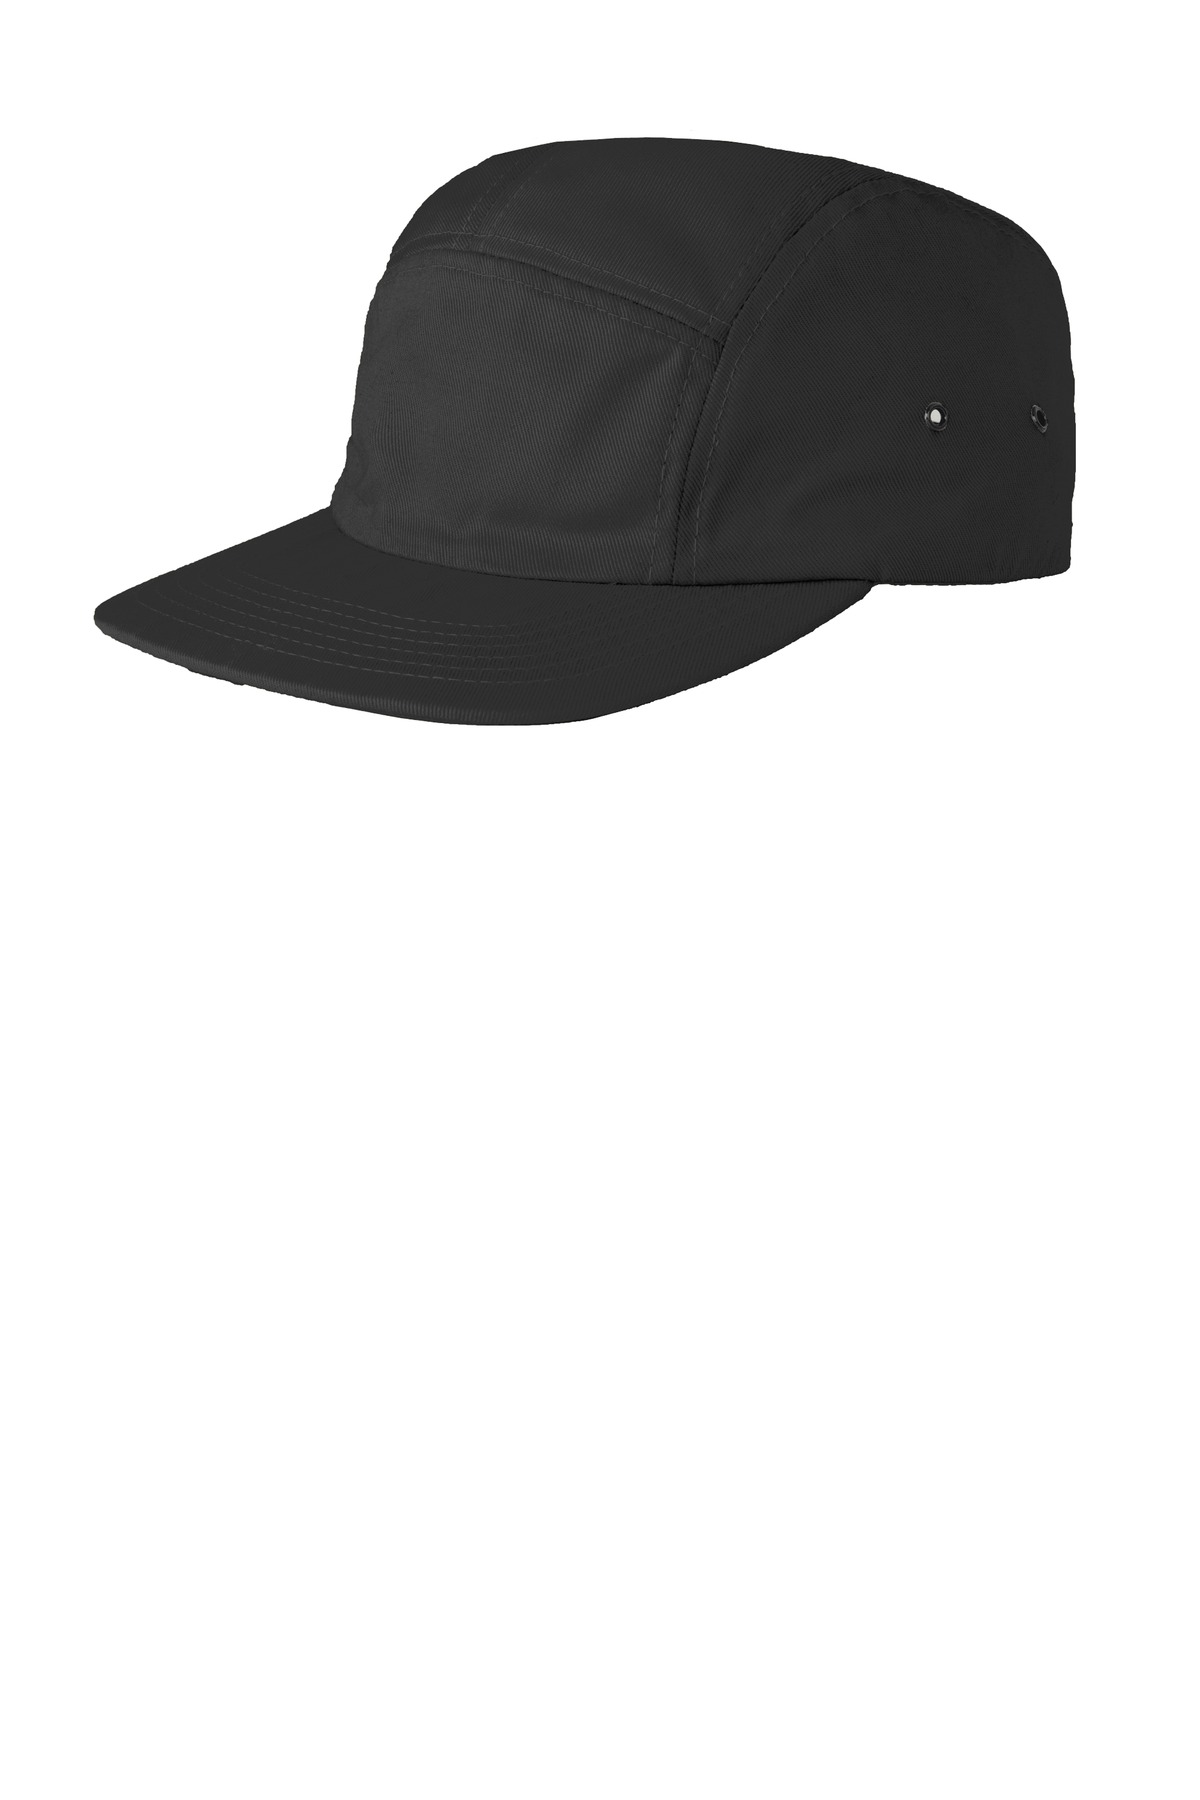 District ®  Camper Hat. DT629